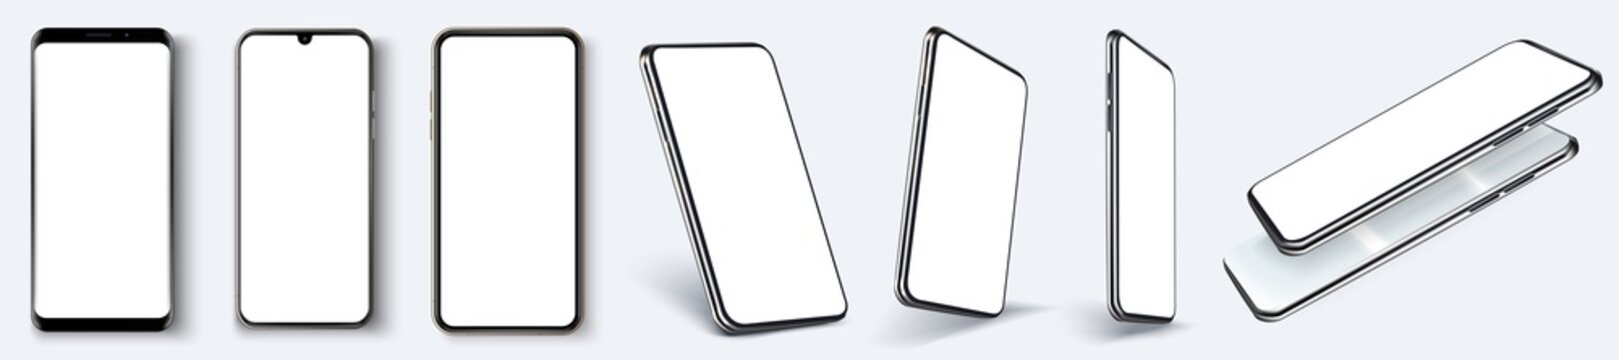 Cellphone frame with blank display isolated templates, phone different angles views. Mockup smartphone device collection with thin frame and blank screen isolated. Vector template app or ux design.